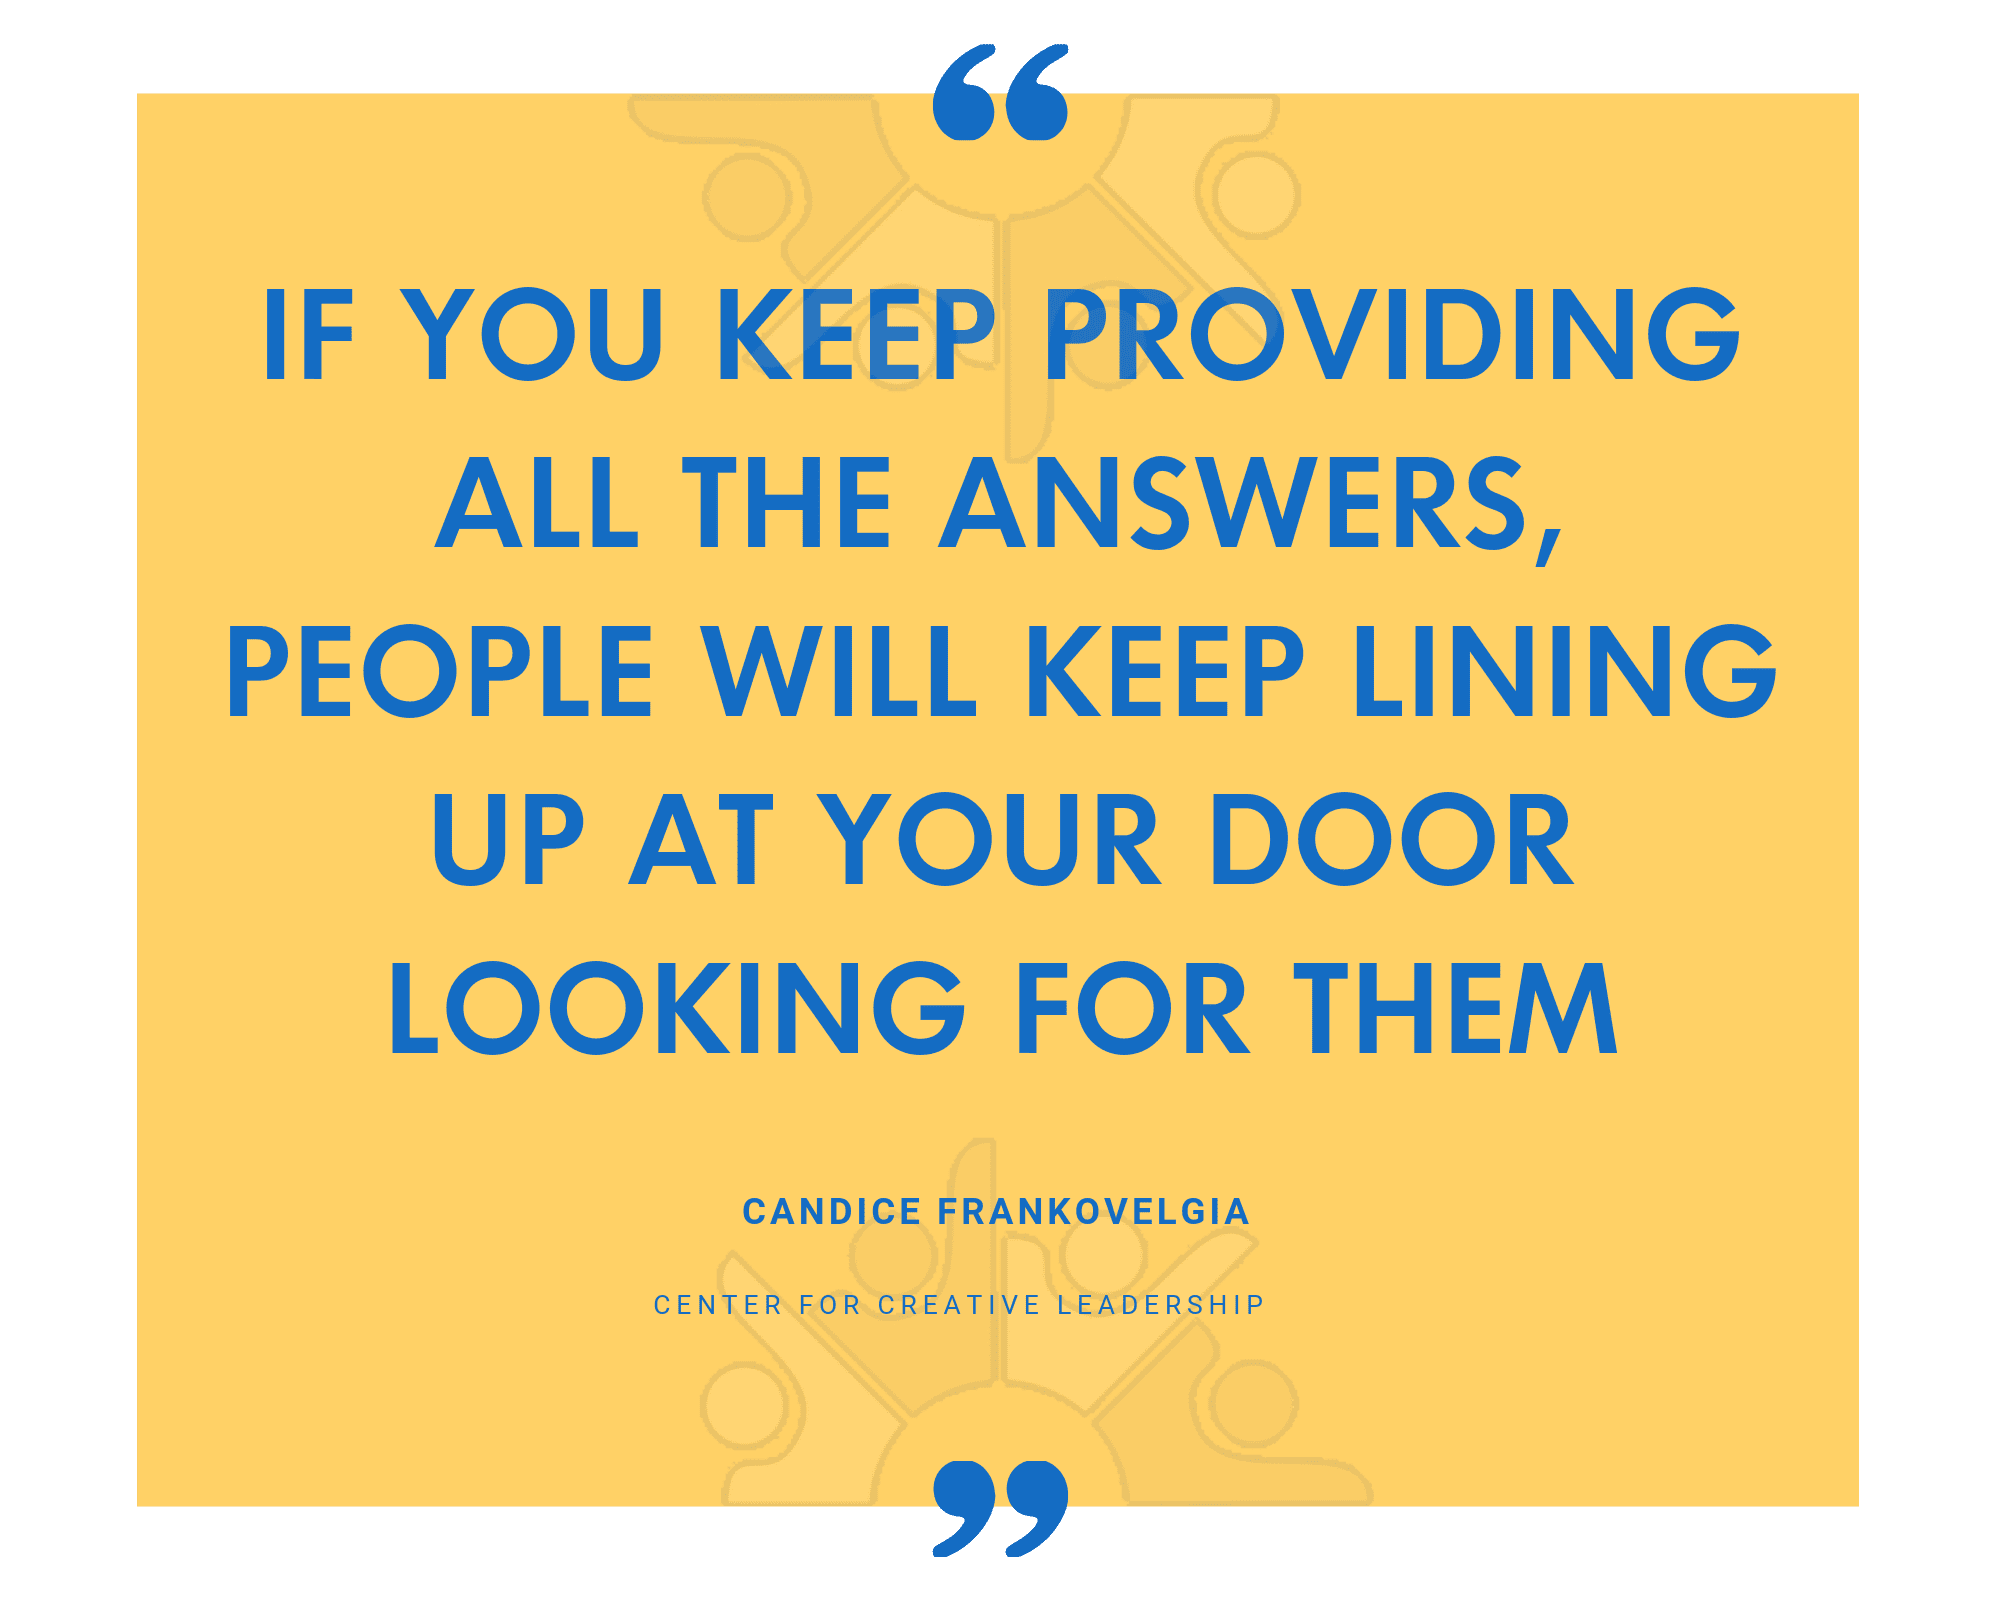 If you keep providing all the answers, people will keep lining up at your door looking for them.